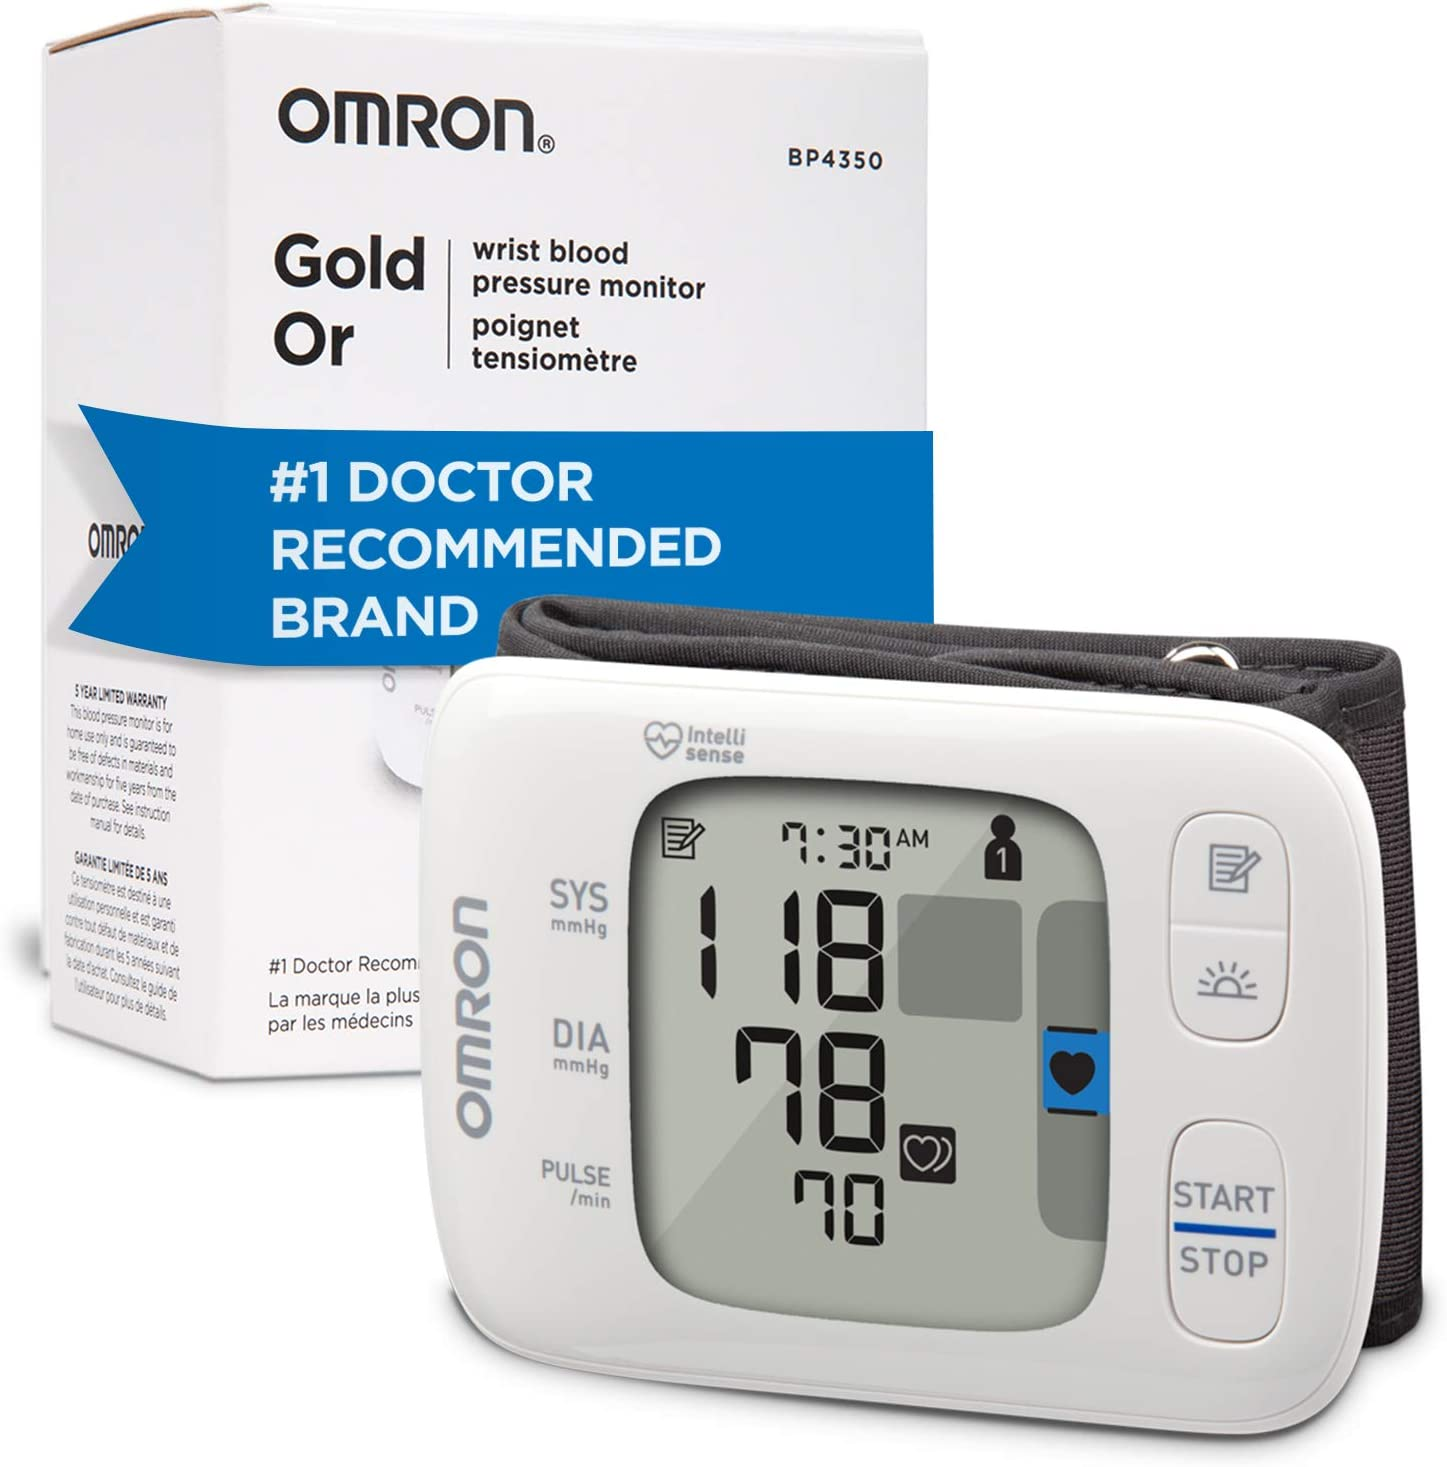 Amazon Com Omron Gold Blood Pressure Monitor Portable Wireless Wrist Monitor Digital Bluetooth Blood Pressure Machine Stores Up To 200 Readings For Two Users 100 Readings Each Health Personal Care